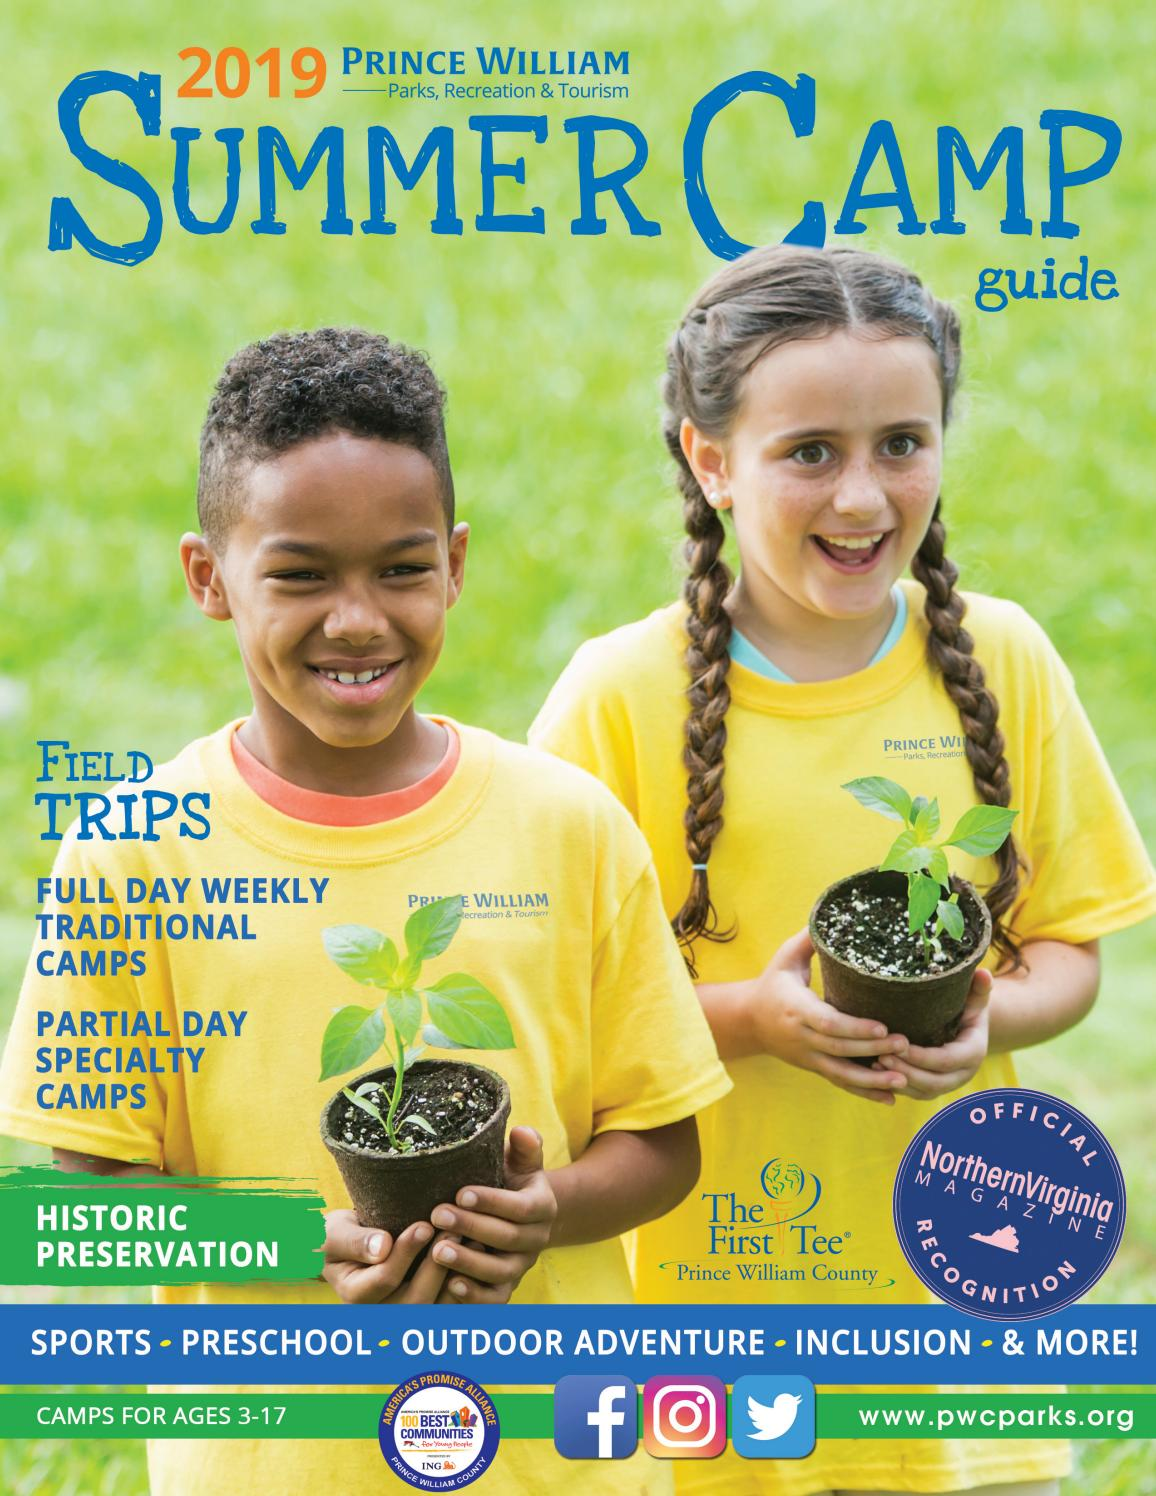 2019 Summer Camp Guide by pwcdpr - issuu